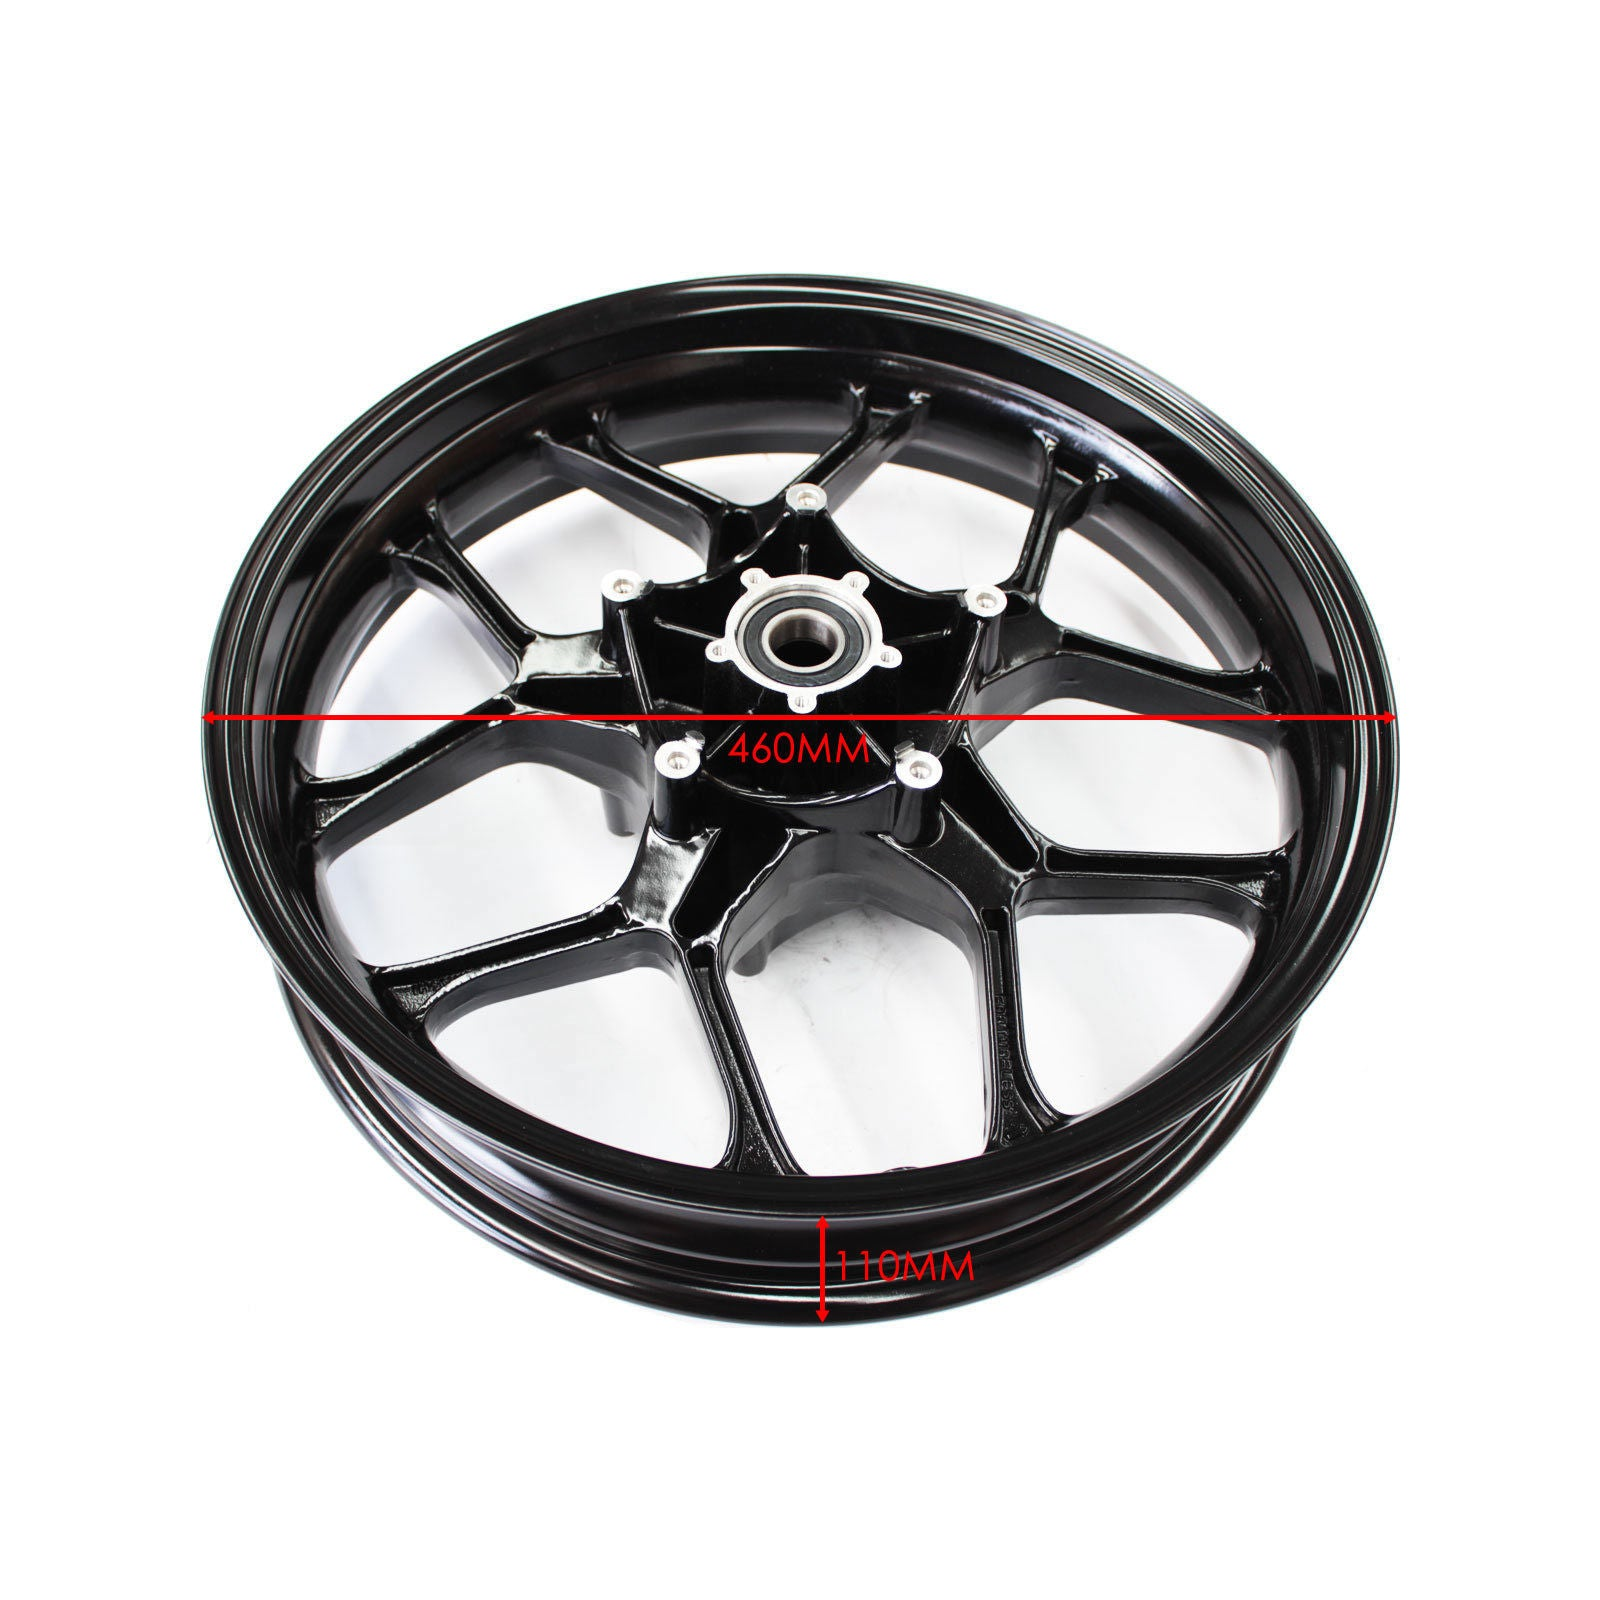 New Black Front Wheel Black Rim for Yamaha YZF-R1 R1 2017 Sport Bike Motorcycle